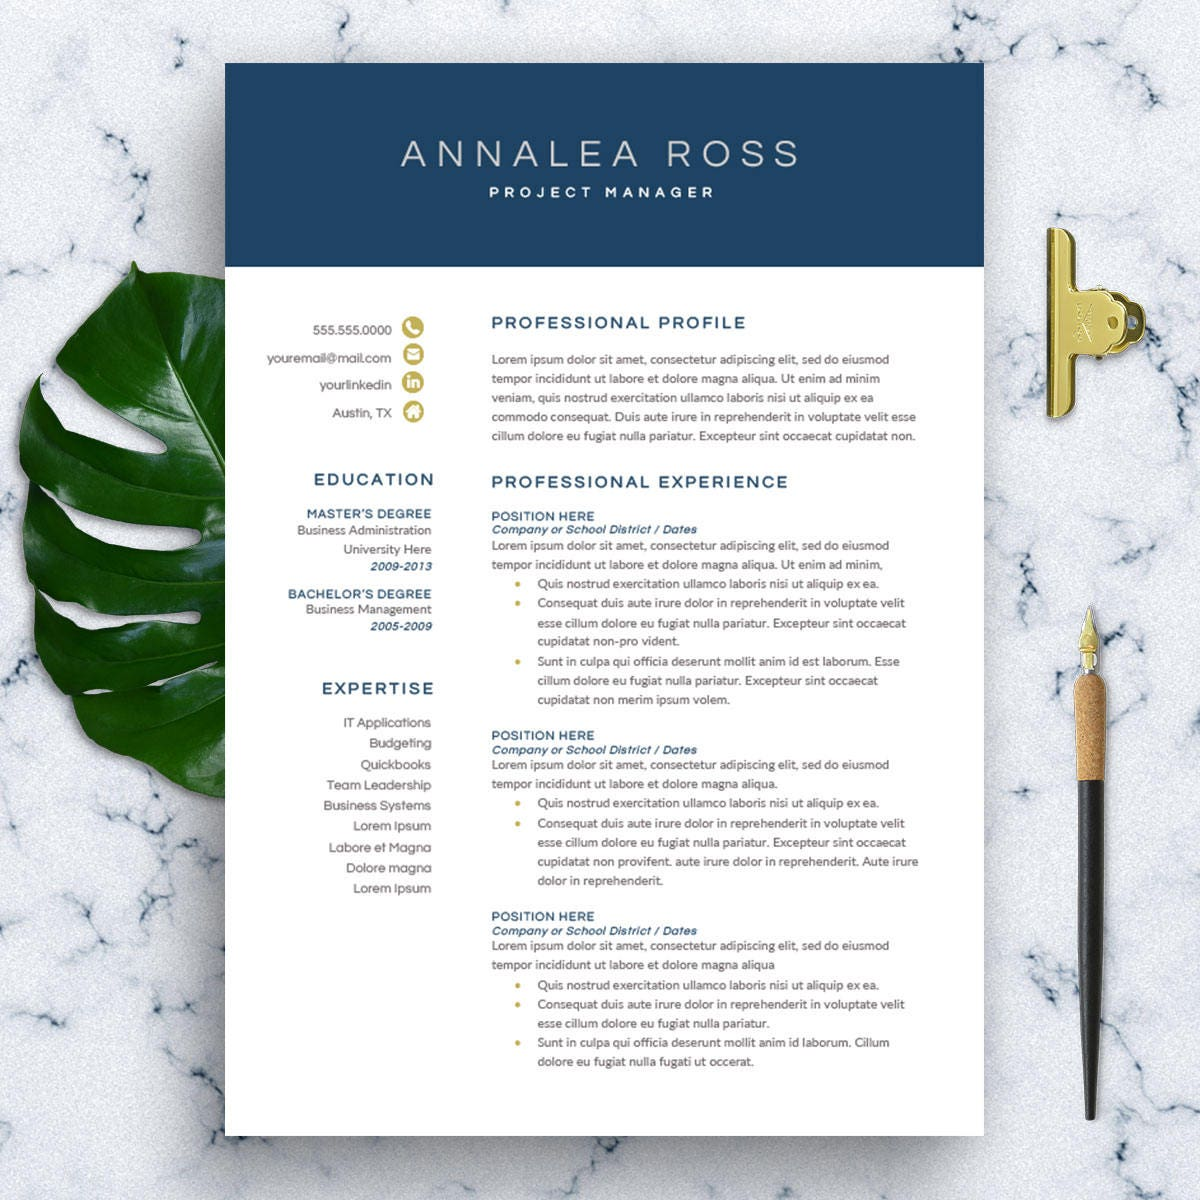 Modern Resume Template For Word 1 3 Page Resume Cover: Modern Resume Template For Word 1-3 Page Resume CV